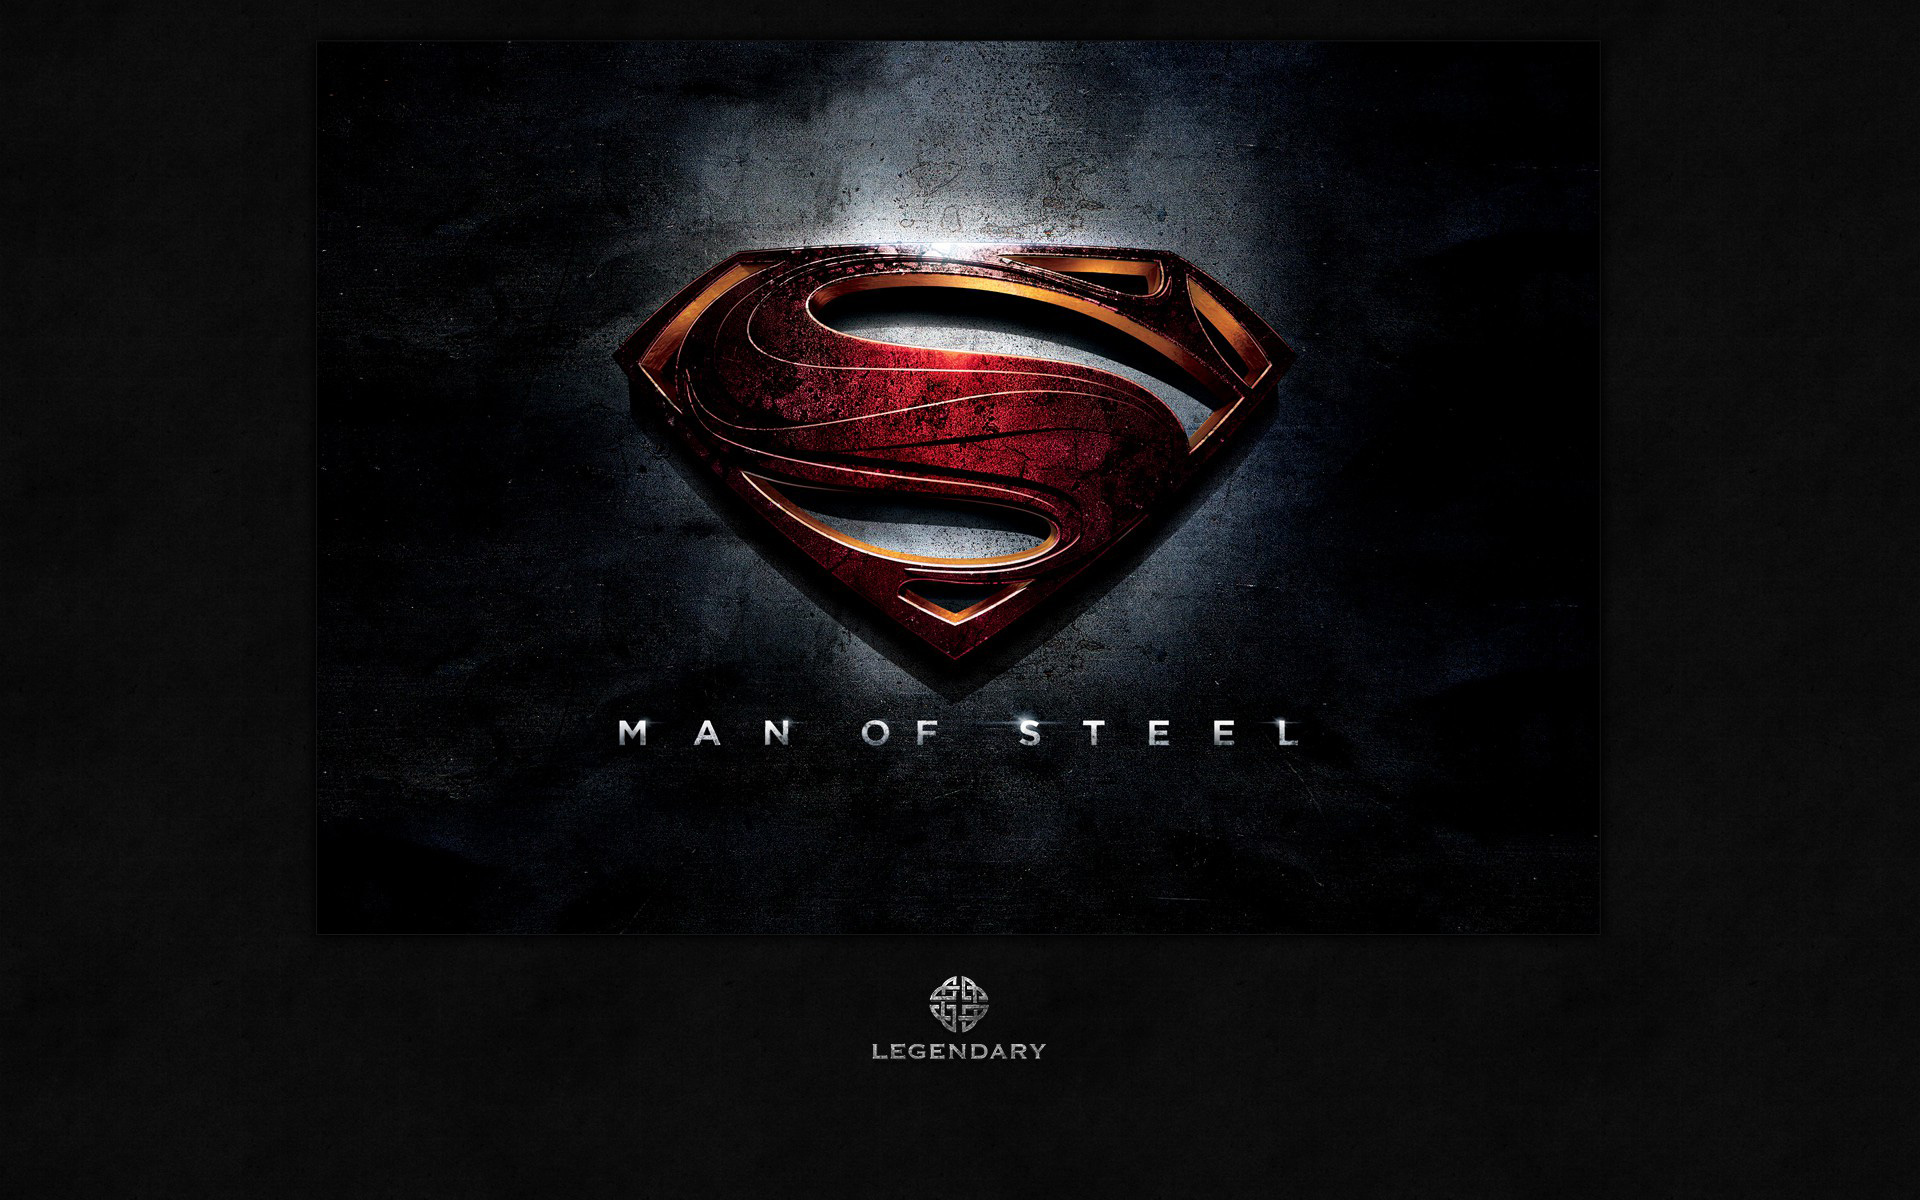 hires version of the man of steel logo now online